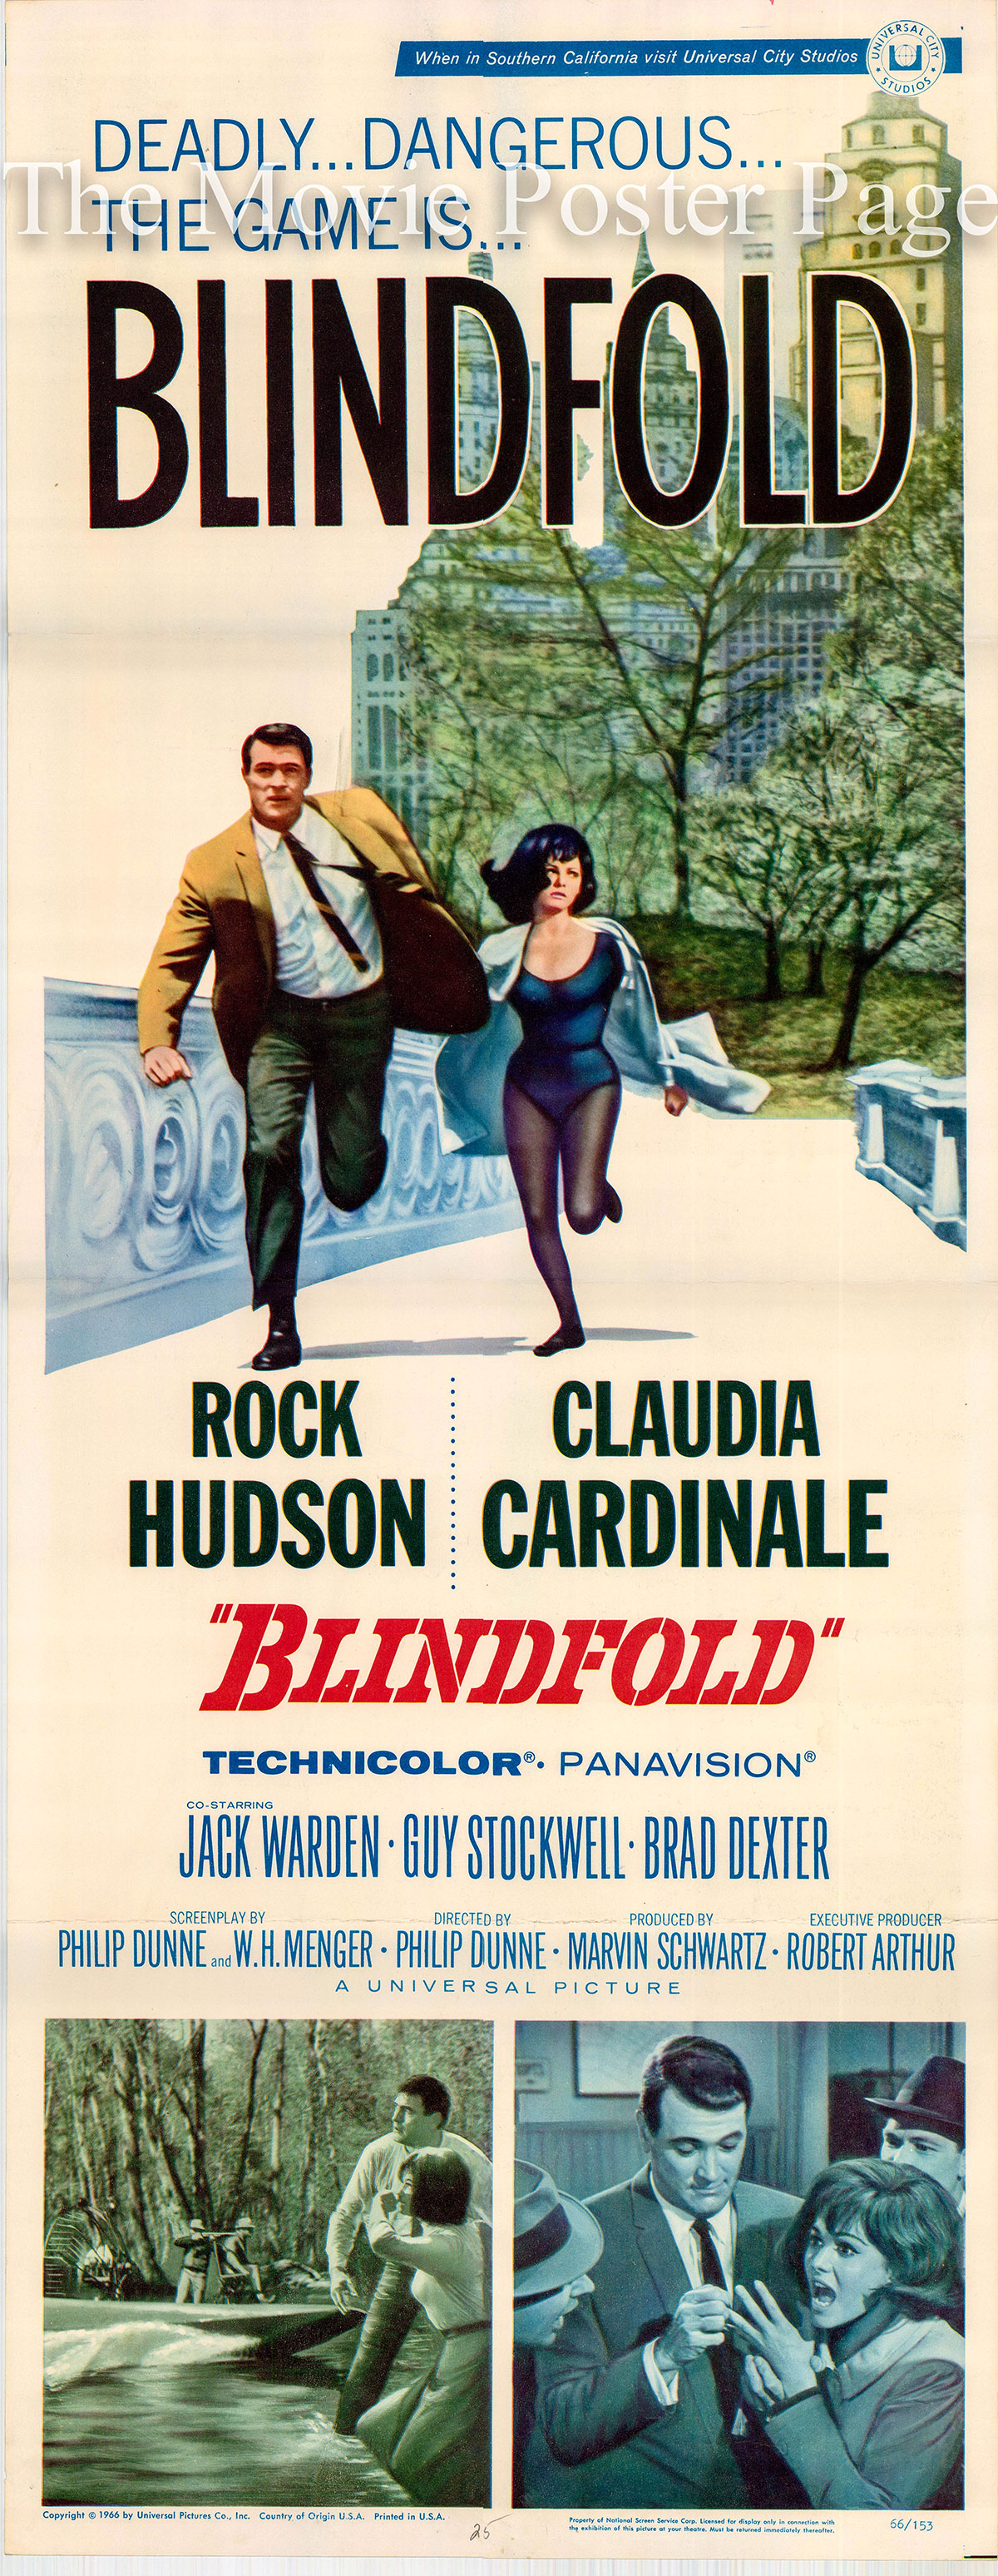 Pictured is a US insert poster for the 1966 Philip Dunne film Blindfold starring Rock Hudson.